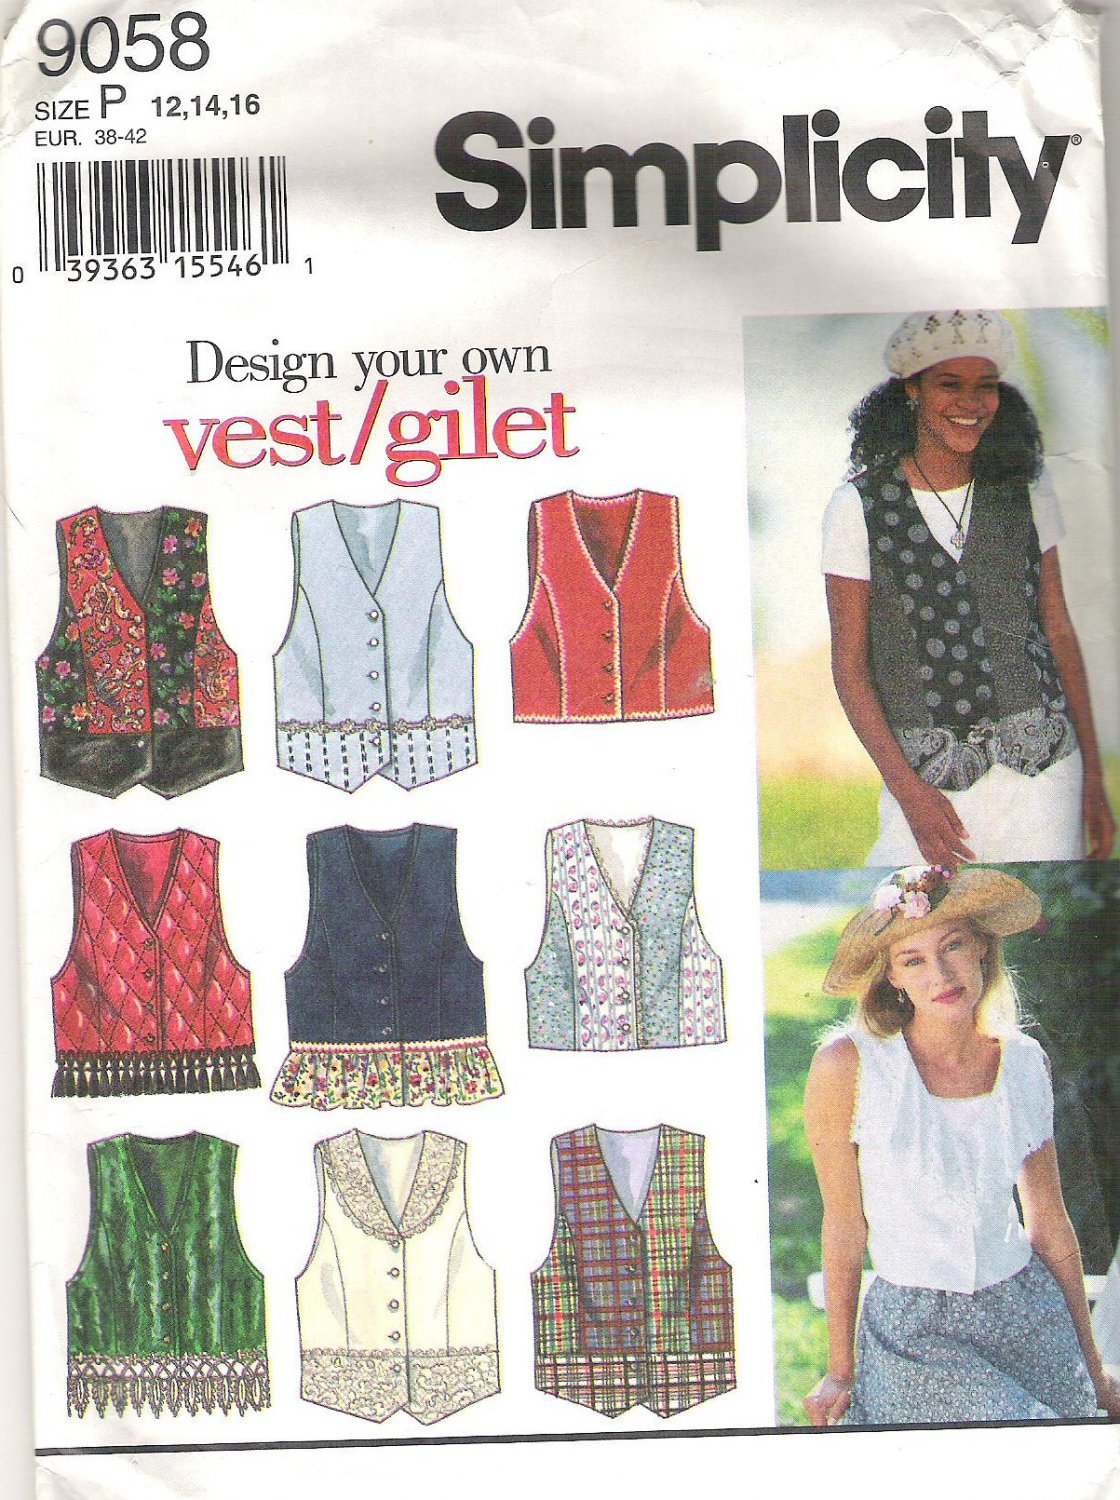 1994 Simplicity 9058 Pattern Design Your Own Vest  Size 12, 14, 16  Cut to 16